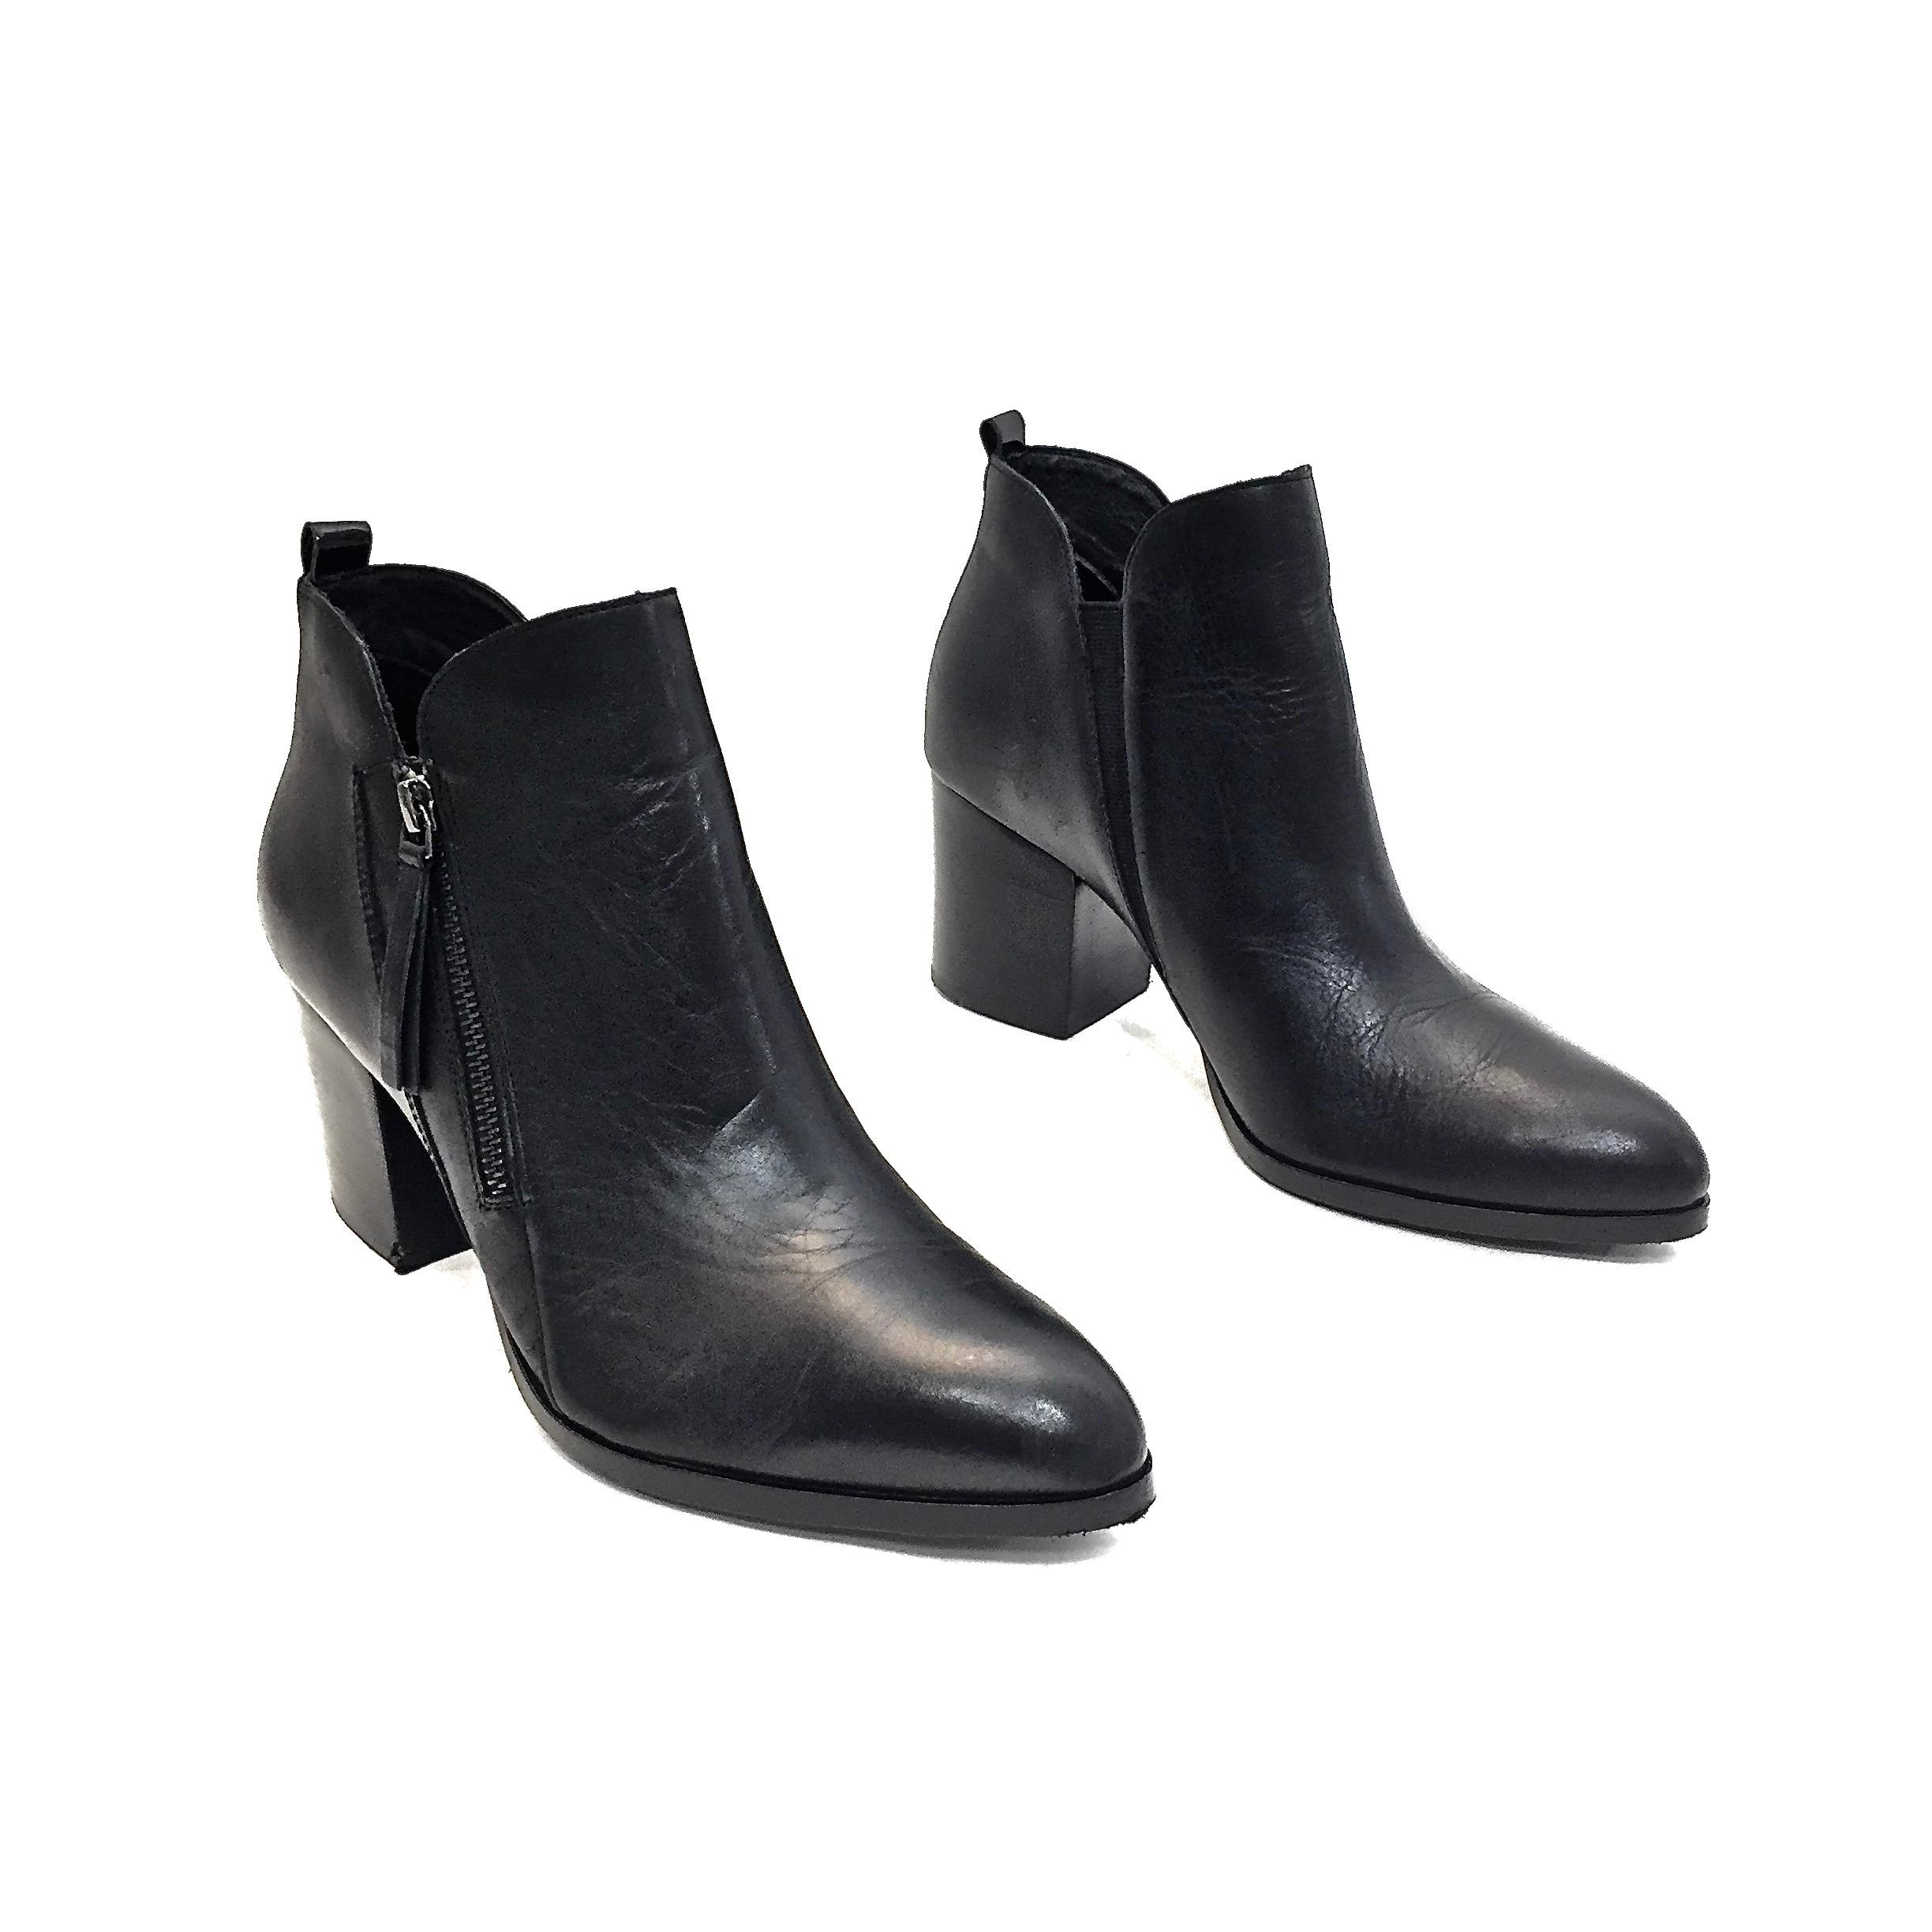 19eb704f8d4 Donald Donald Donald J. Pliner Black Leather Pointy Toe Zip-up Ankle ...